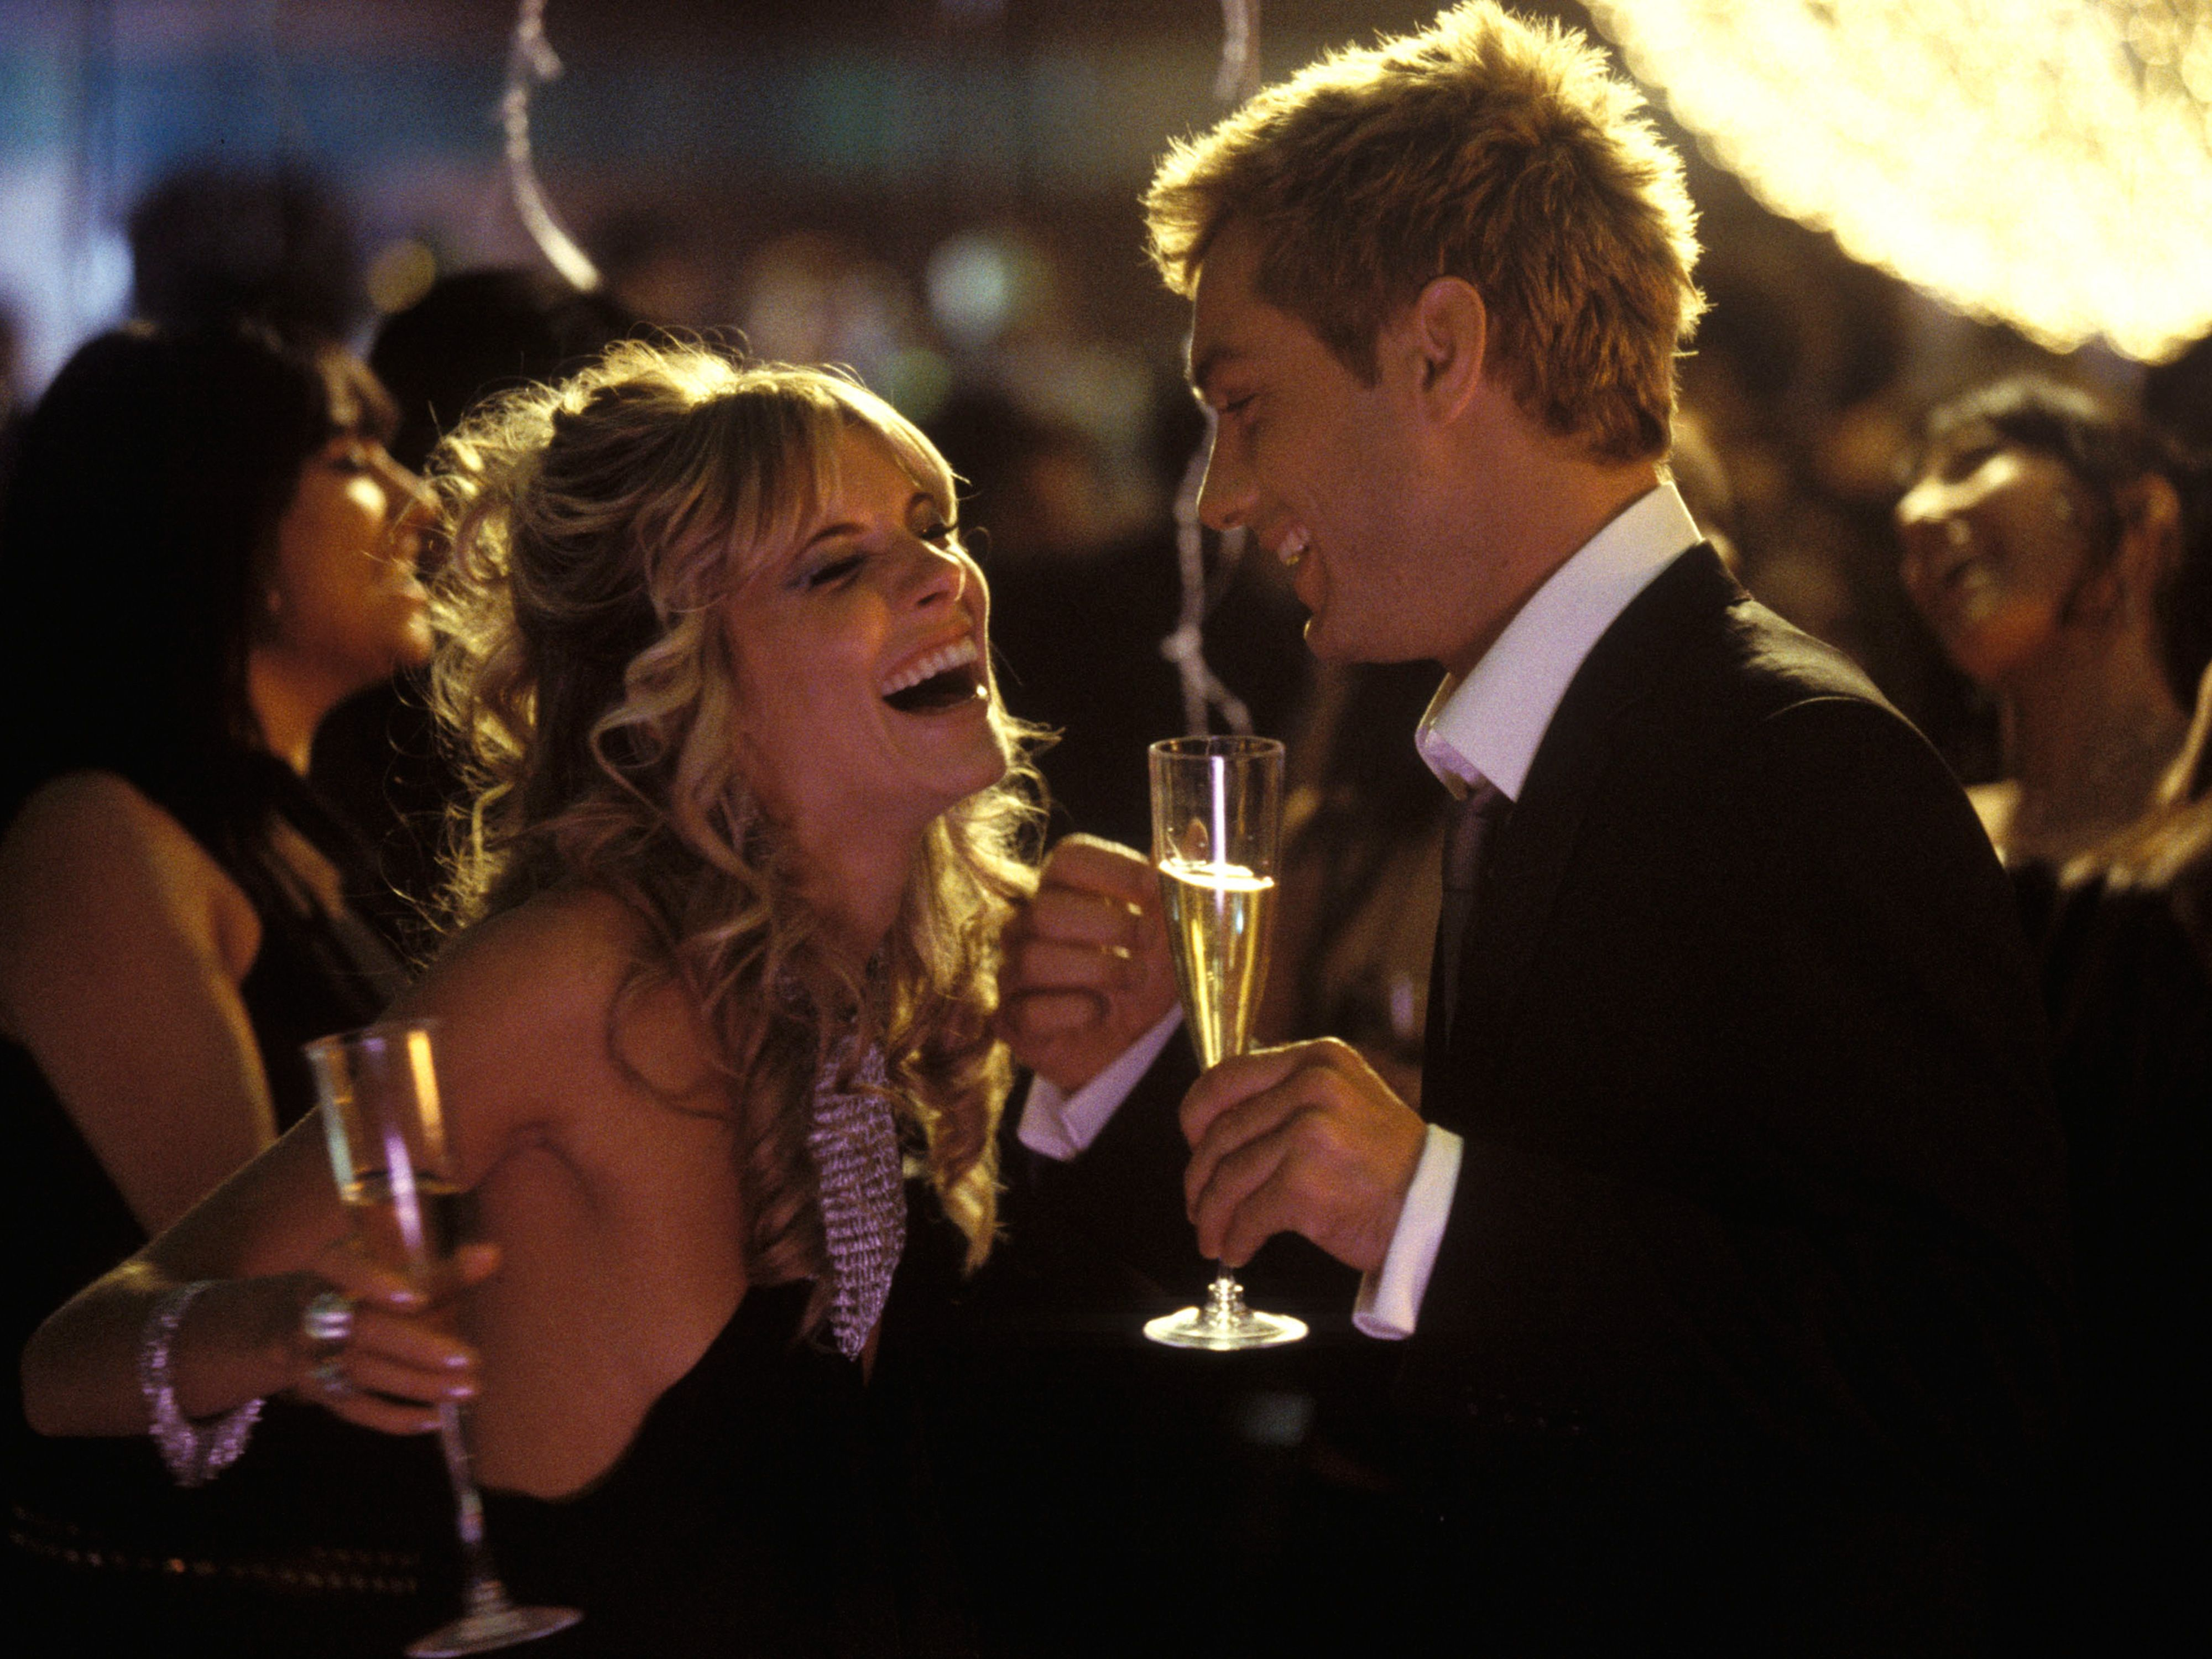 Champagne Etiquette And Rules